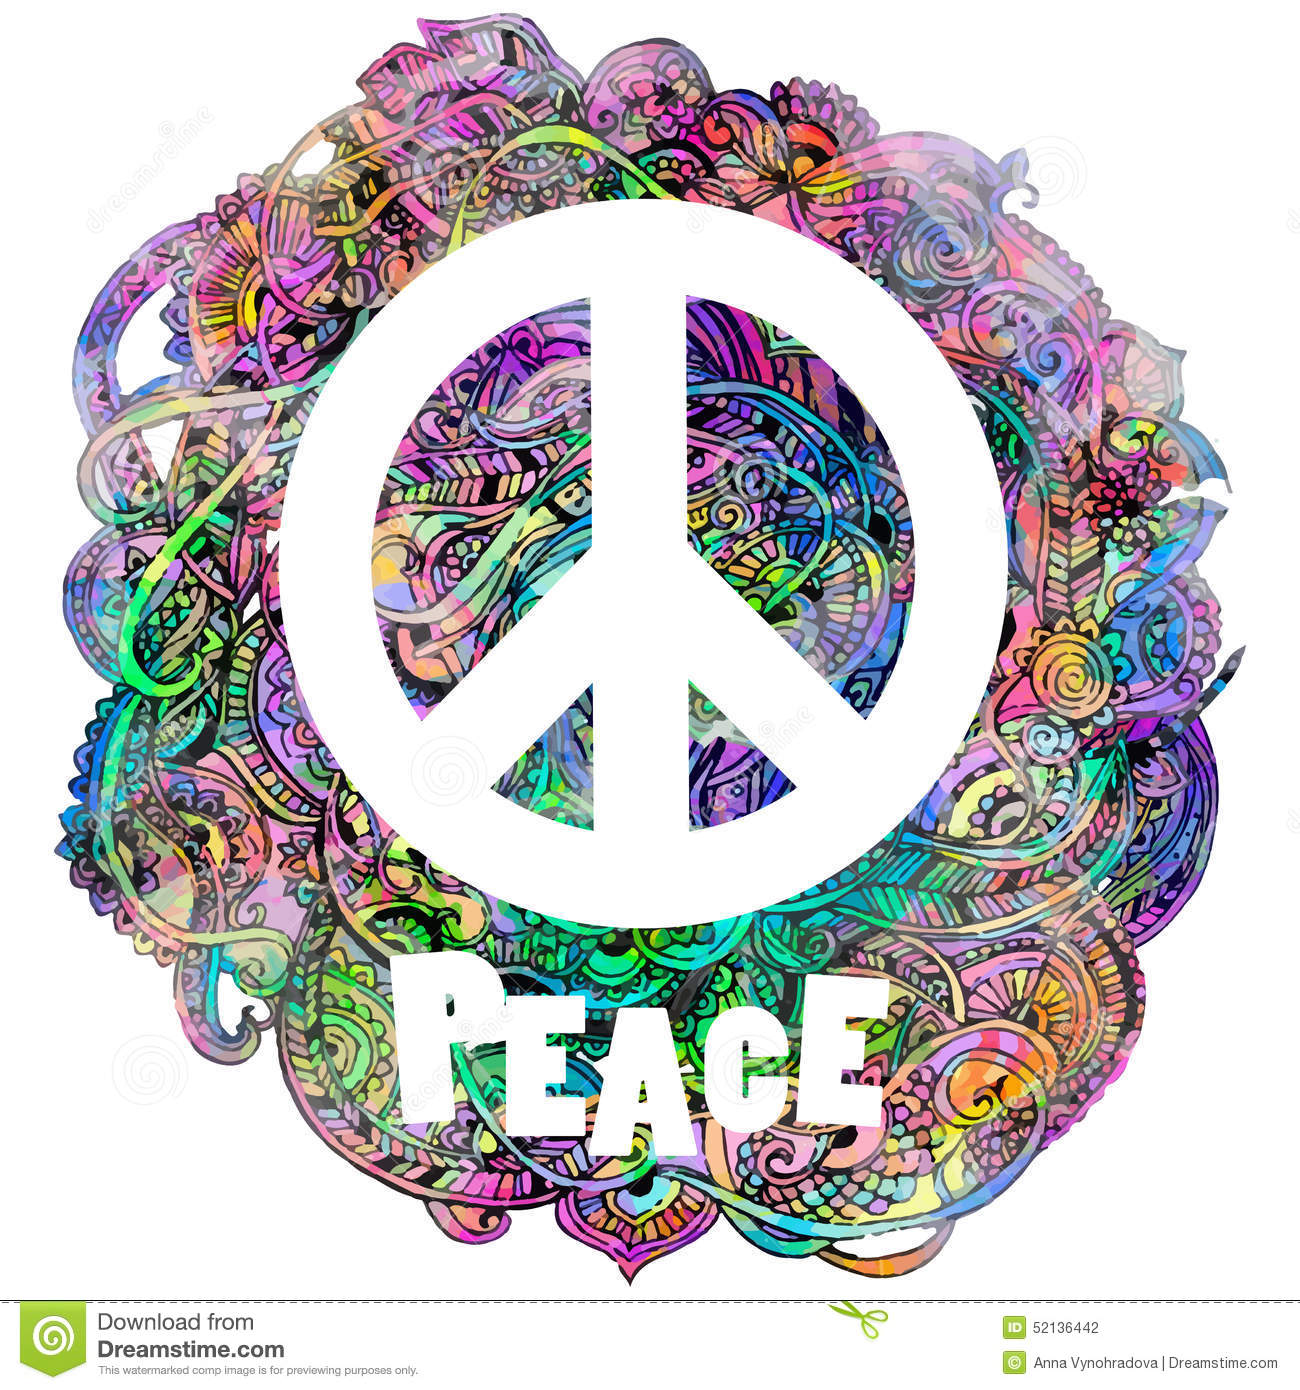 background designs peace sign - photo #35